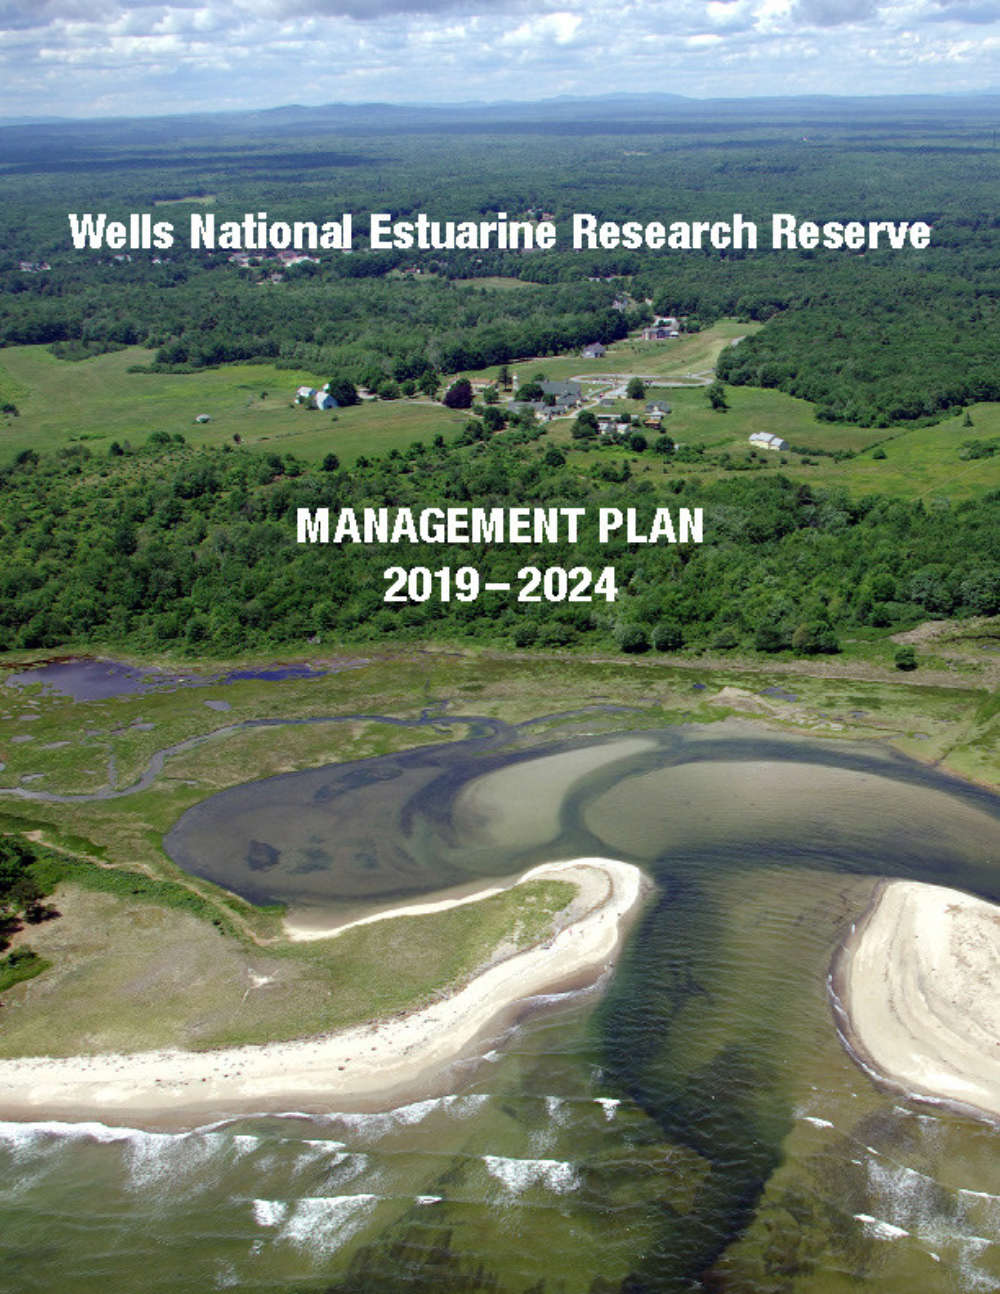 Cover image for Wells National Estuarine Research Reserve Management Plan 2019 to 2024, showing aerial view of Little River mouth and Laudholm campus.